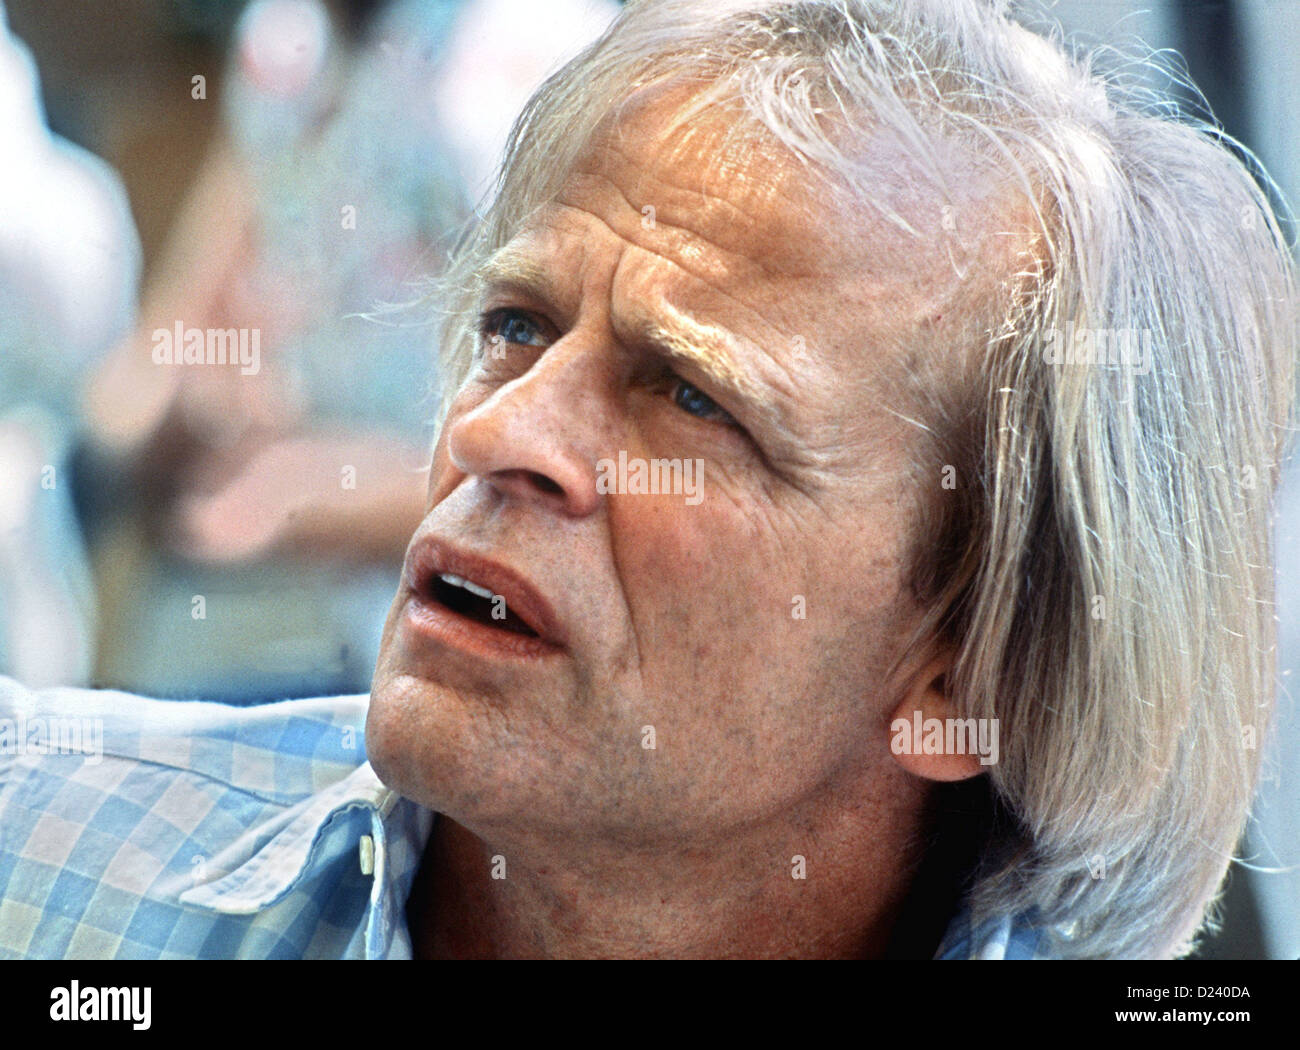 (dpa files) - German actor Klaus Kinski, pictured during the International Film Festival in Cannes, France, 25 May 1982. An 'enfant terrible' of the film industry, his films include 'Aguirre, der Zorn Gottes' ('Aguirre: The Wrath of God') and 'Nosferatu: Phantom der Nacht' ('Nosferatu the Vampire'). Kinski was born on 18 October 1926 in Danzig, Germany (now Gdansk, Poland) under the name of Nikolaus Guenther Nakszynski and died on 23 November 1991 in Lagunitas, California, of a heart attack. Stock Photo